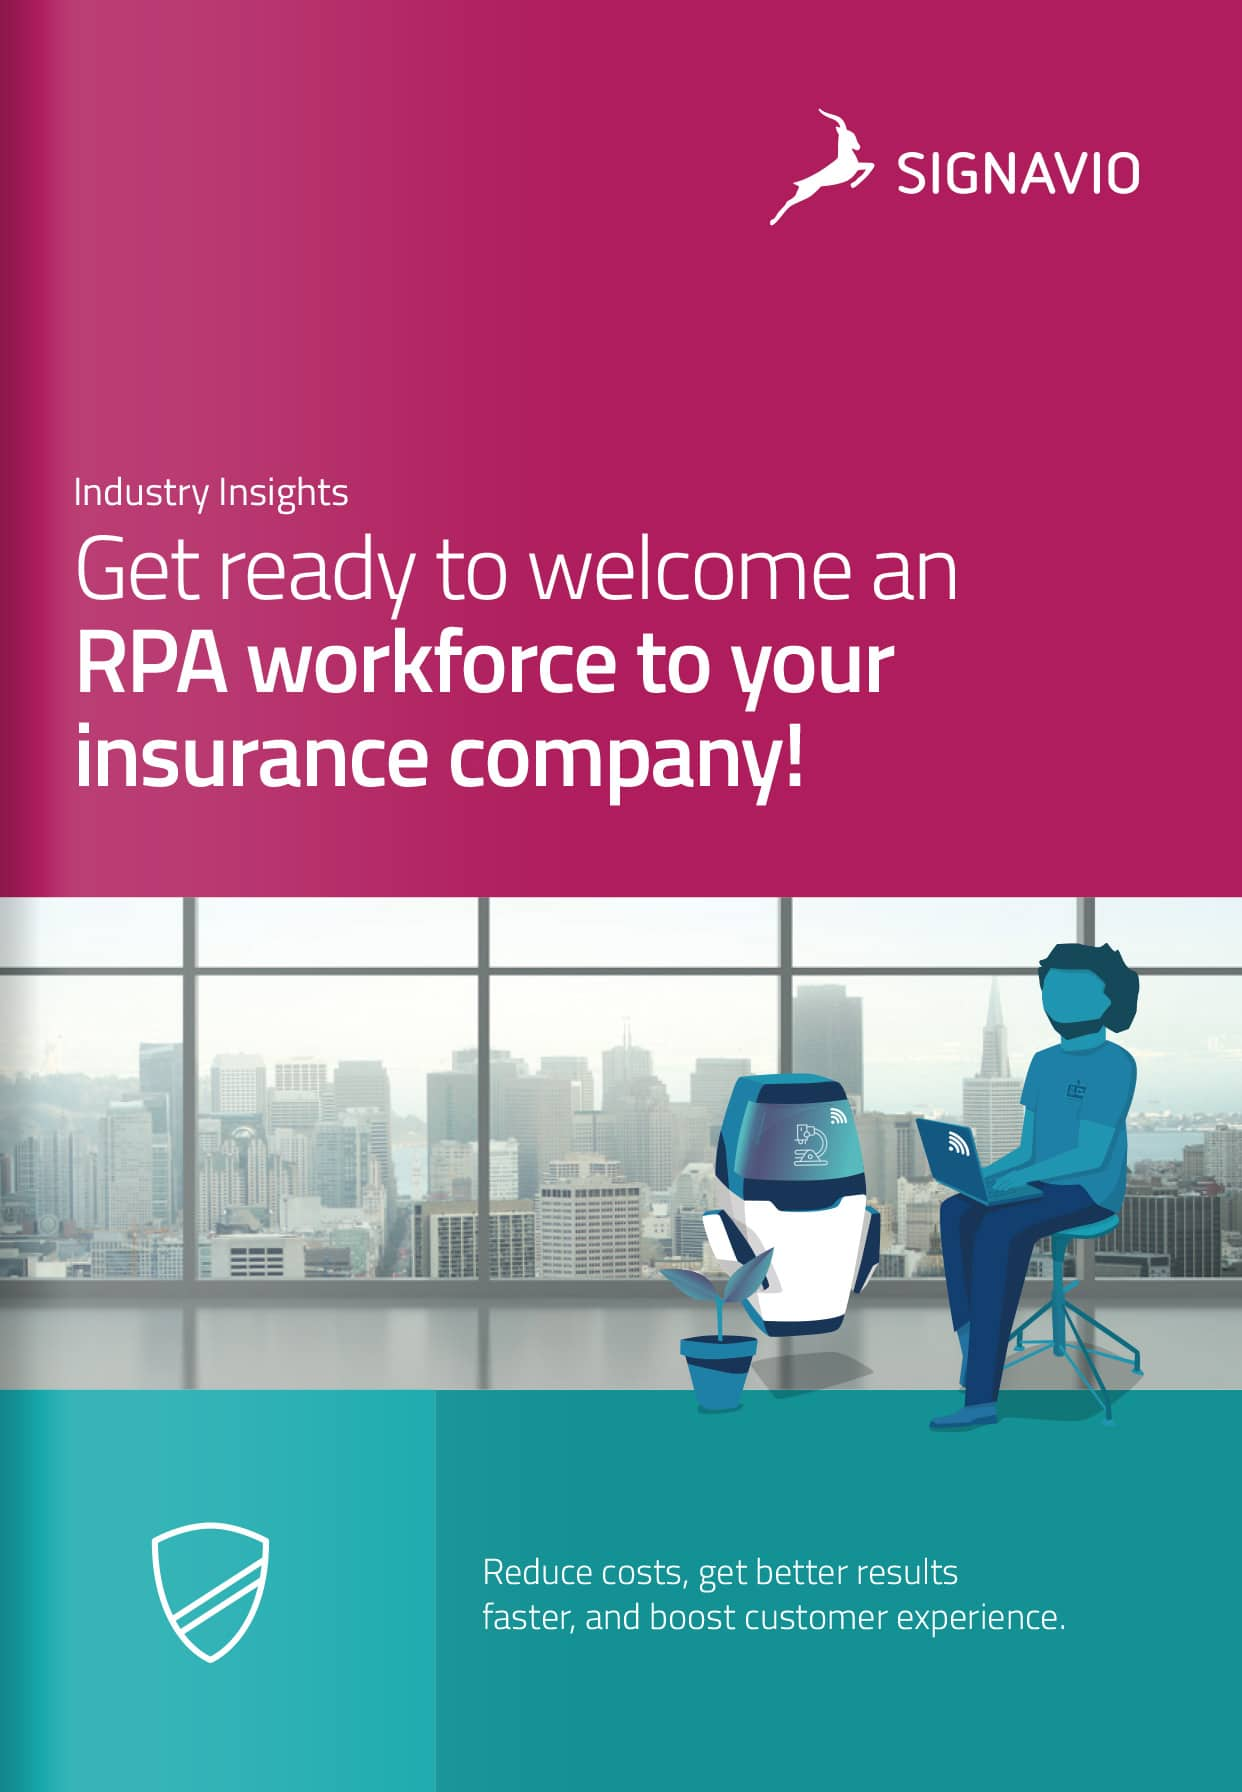 Get ready to welcome an RPA workforce to your insurance company!